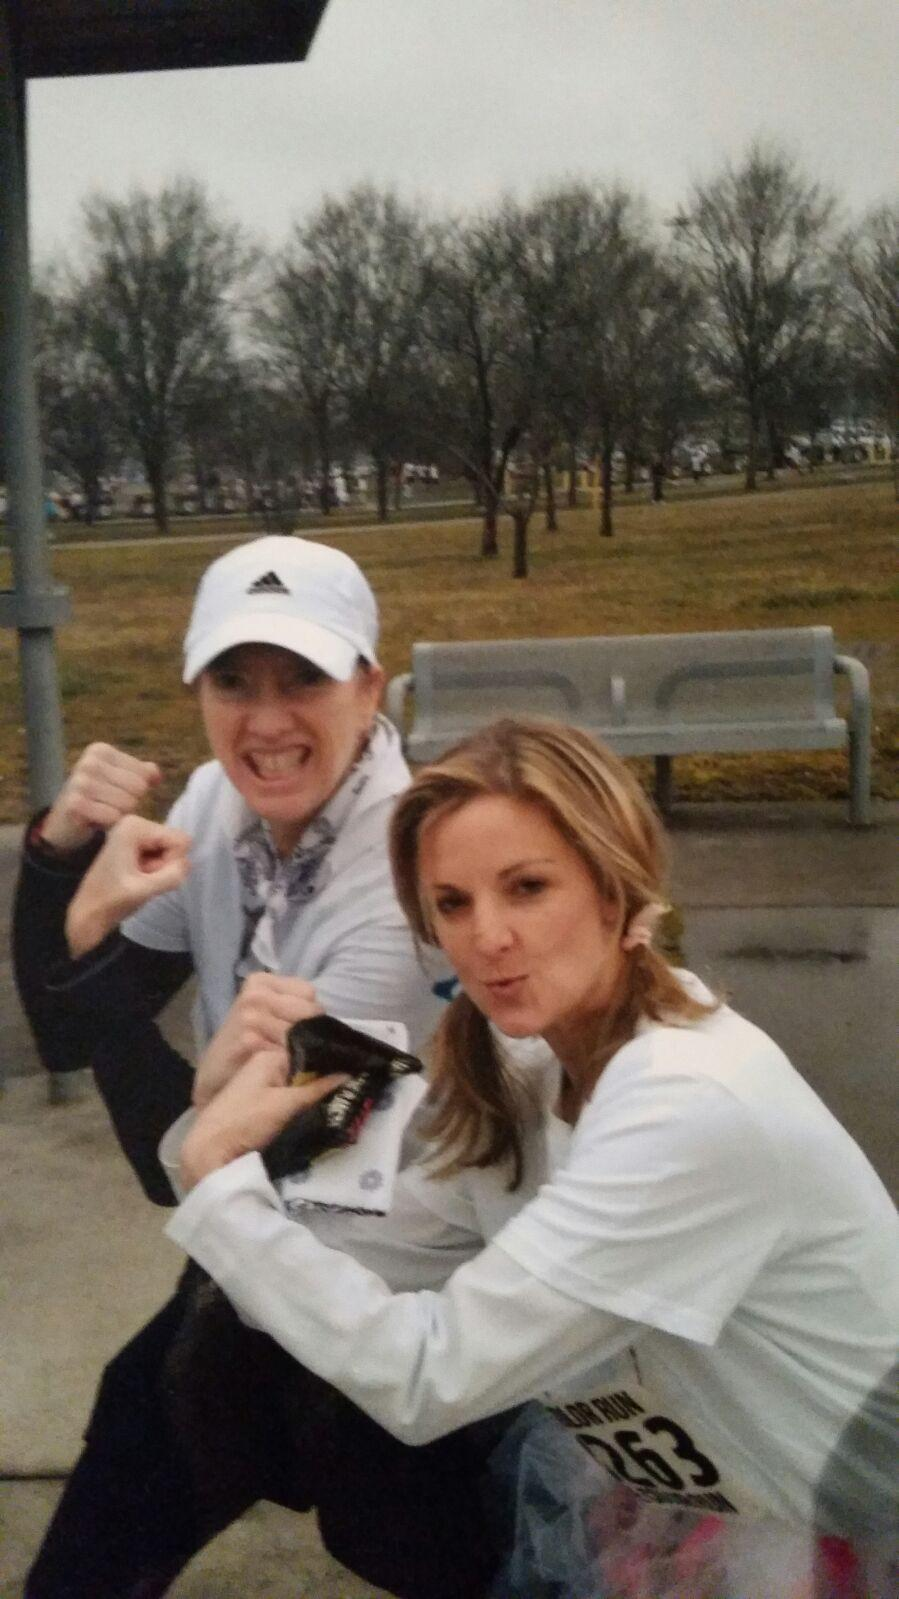 Melinda and Carrie at the Color Run